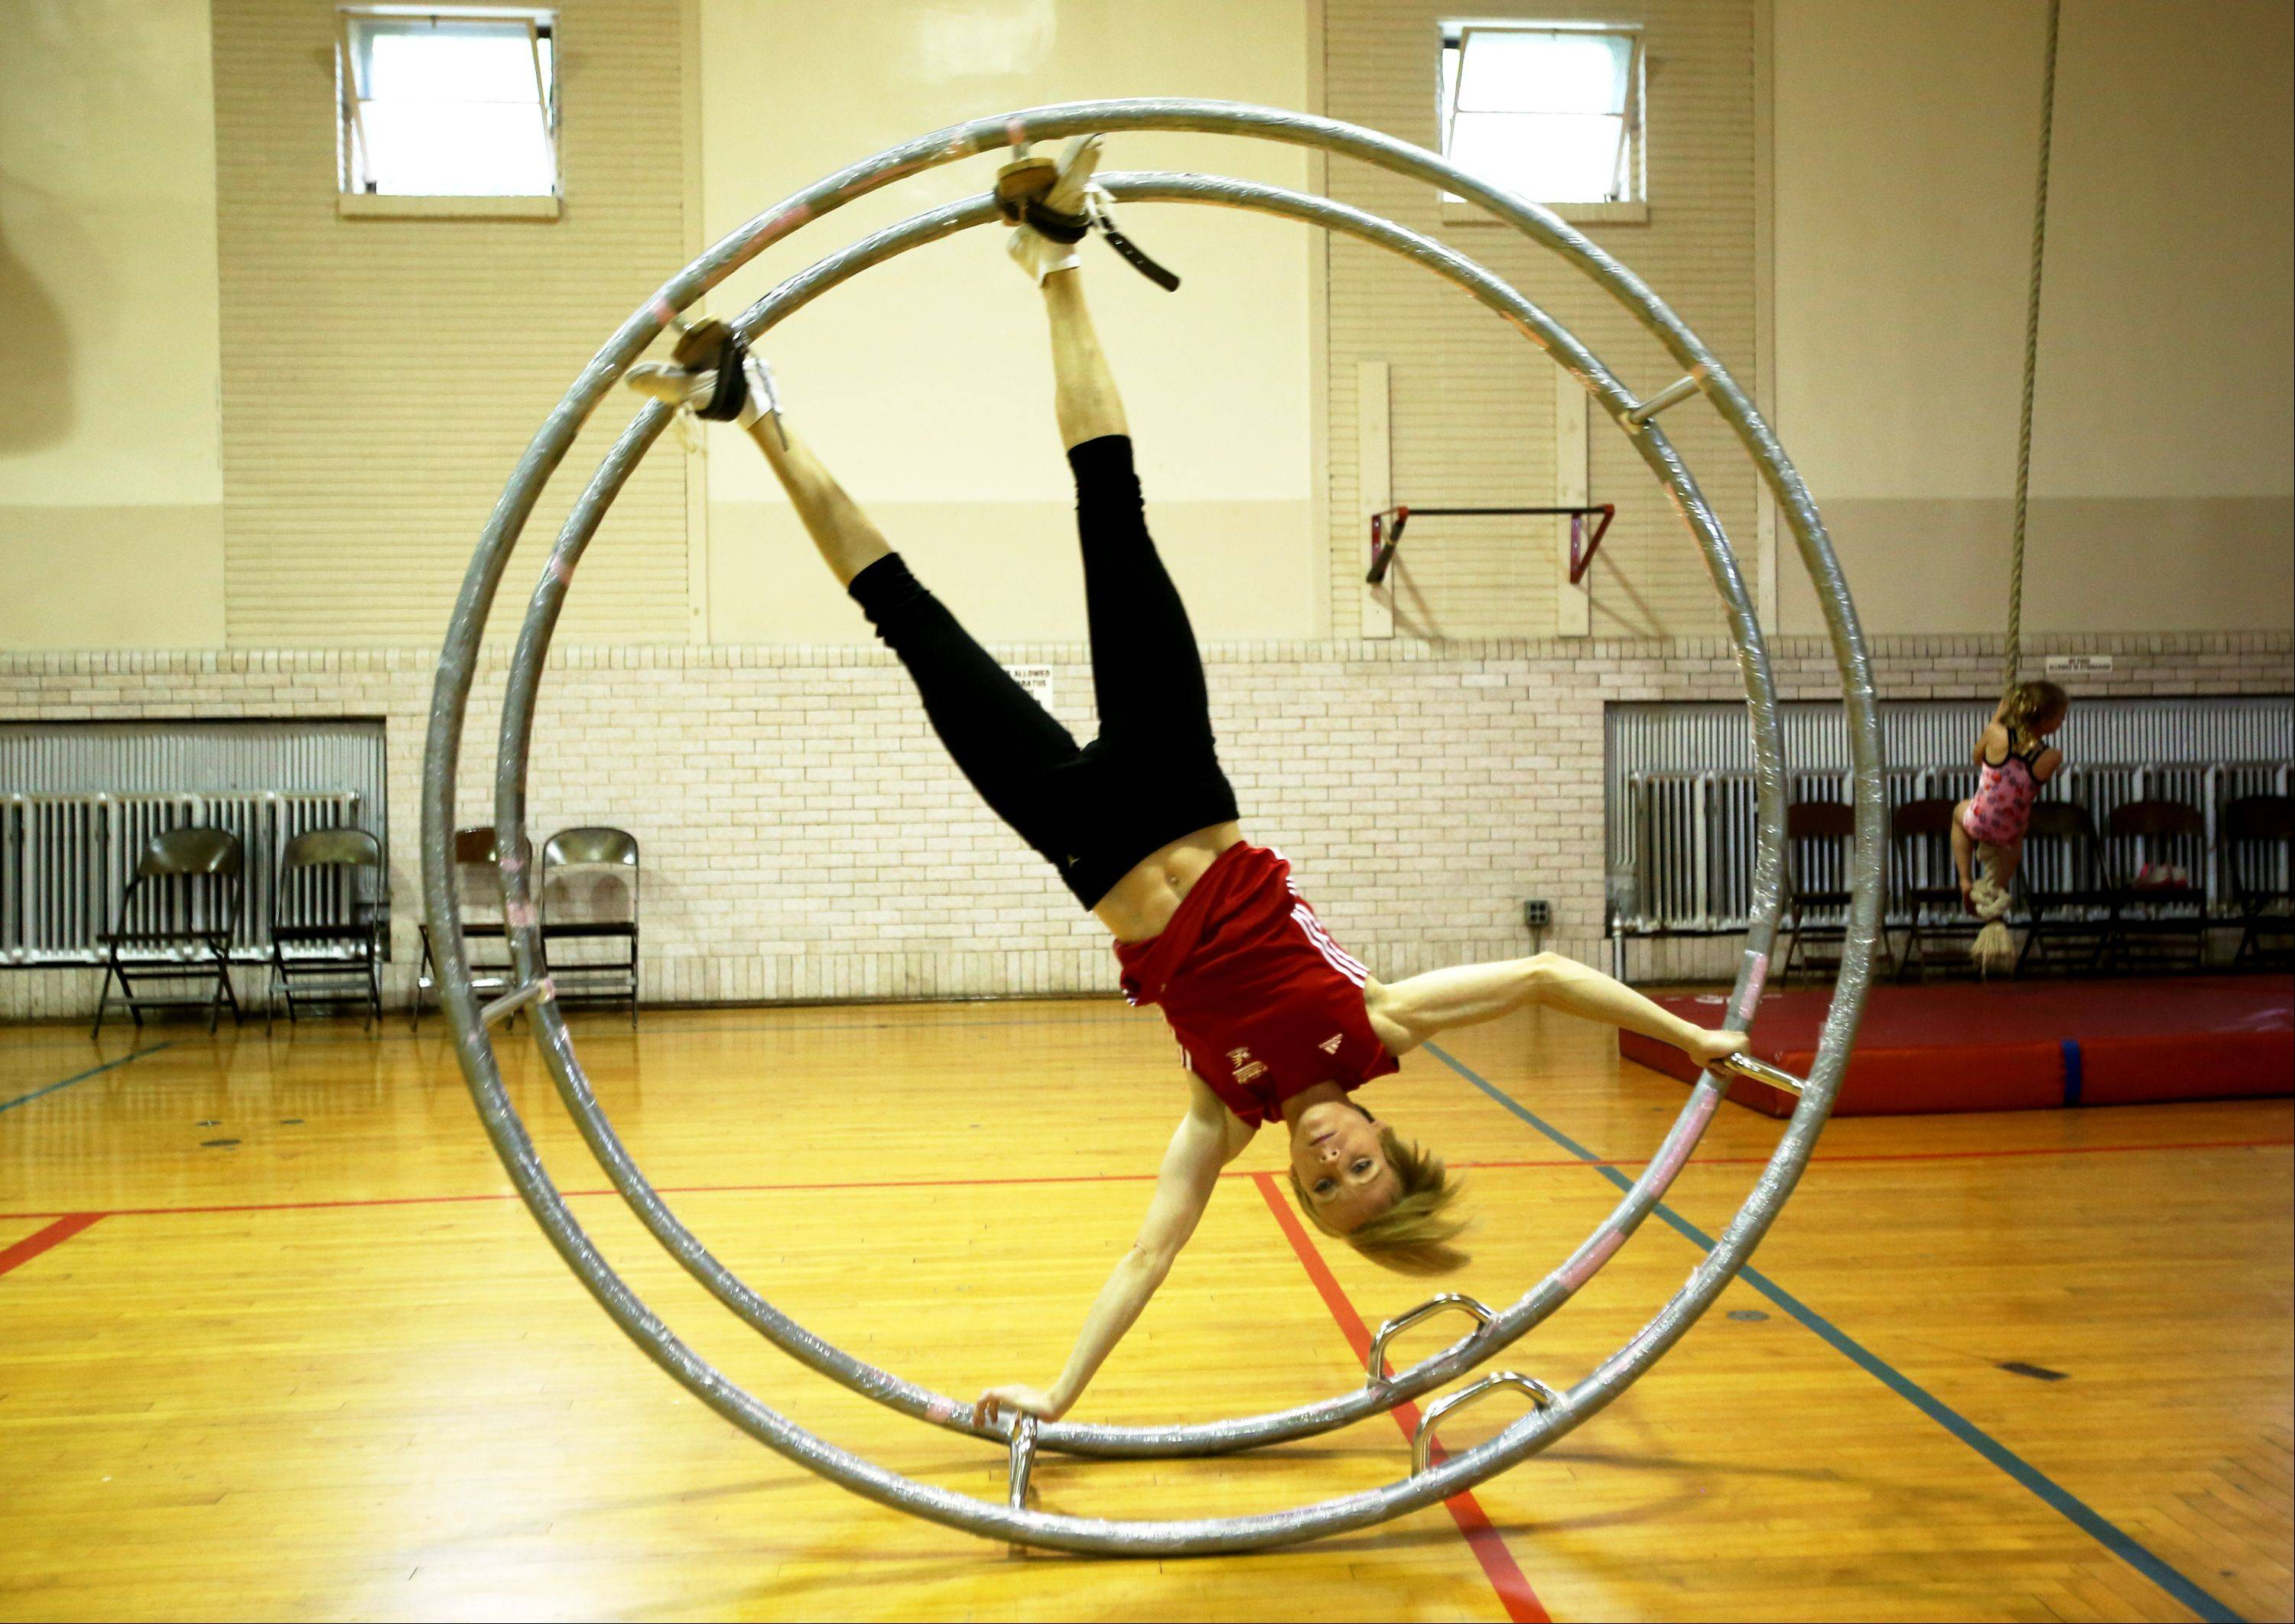 Pajer has been practicing wheel gymnastics for only three years. Above is an example of the straight line discipline of the competition.